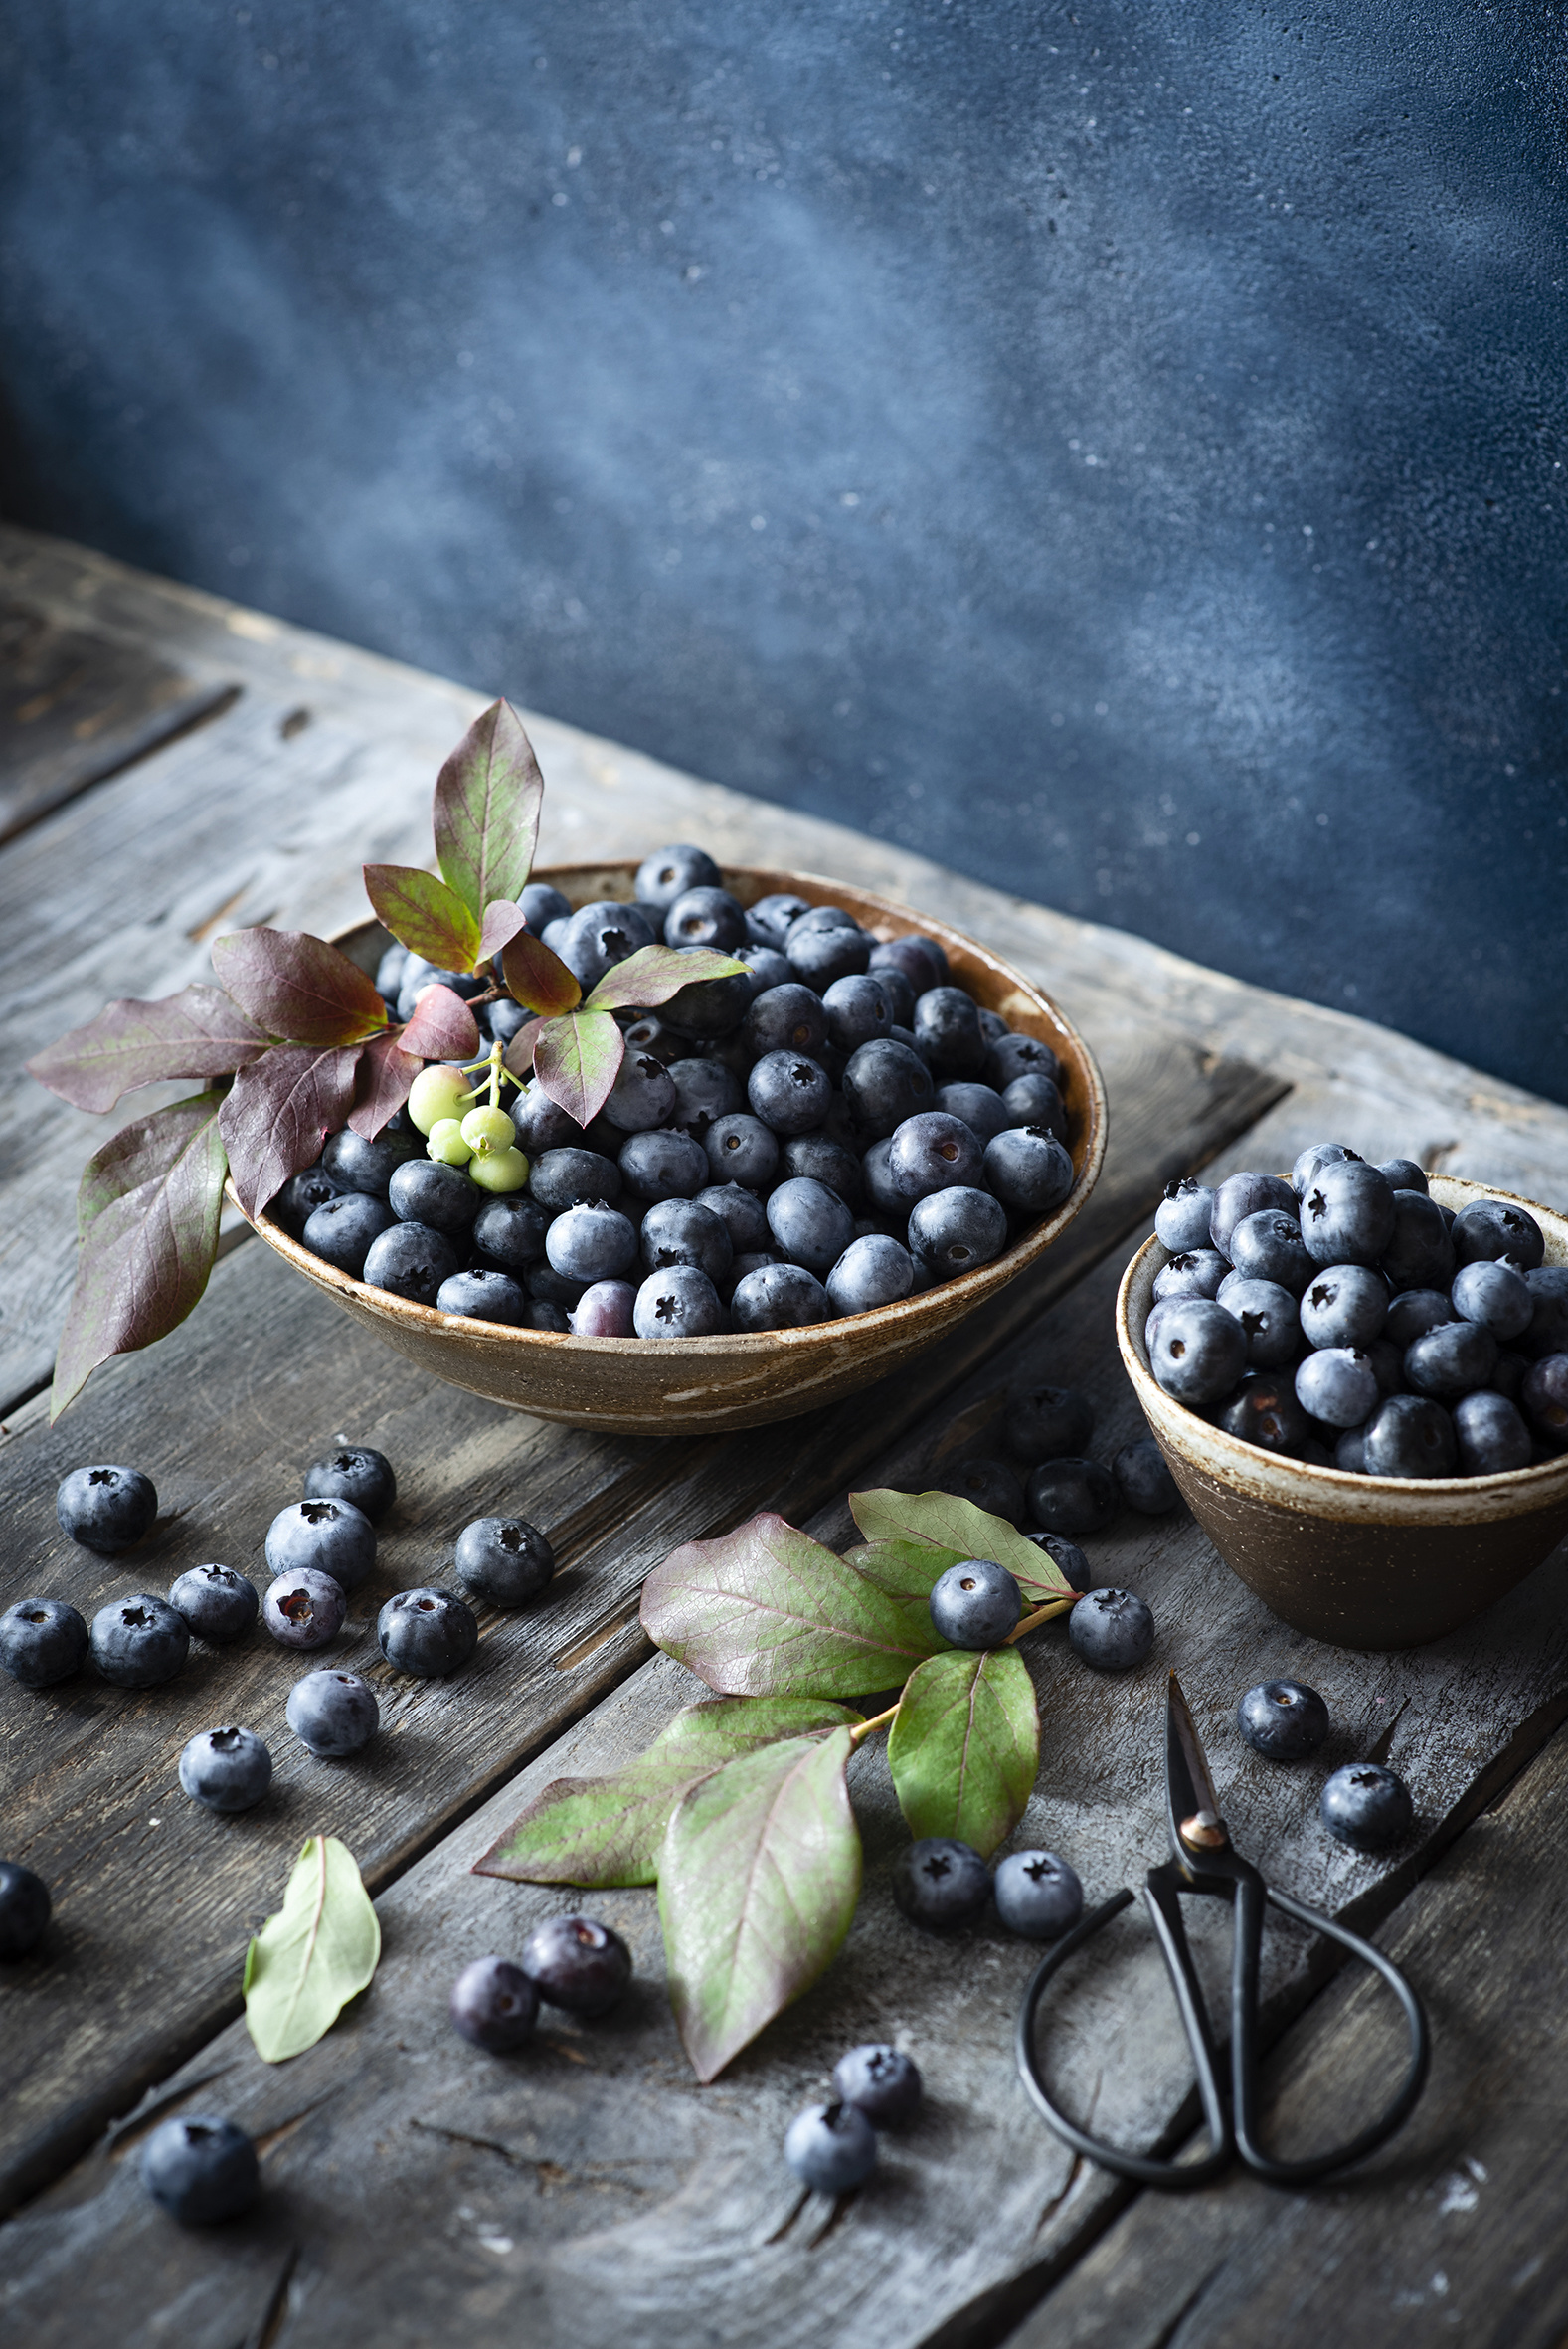 Image Bowl Blueberries Food boards  for Mobile phone Wood planks